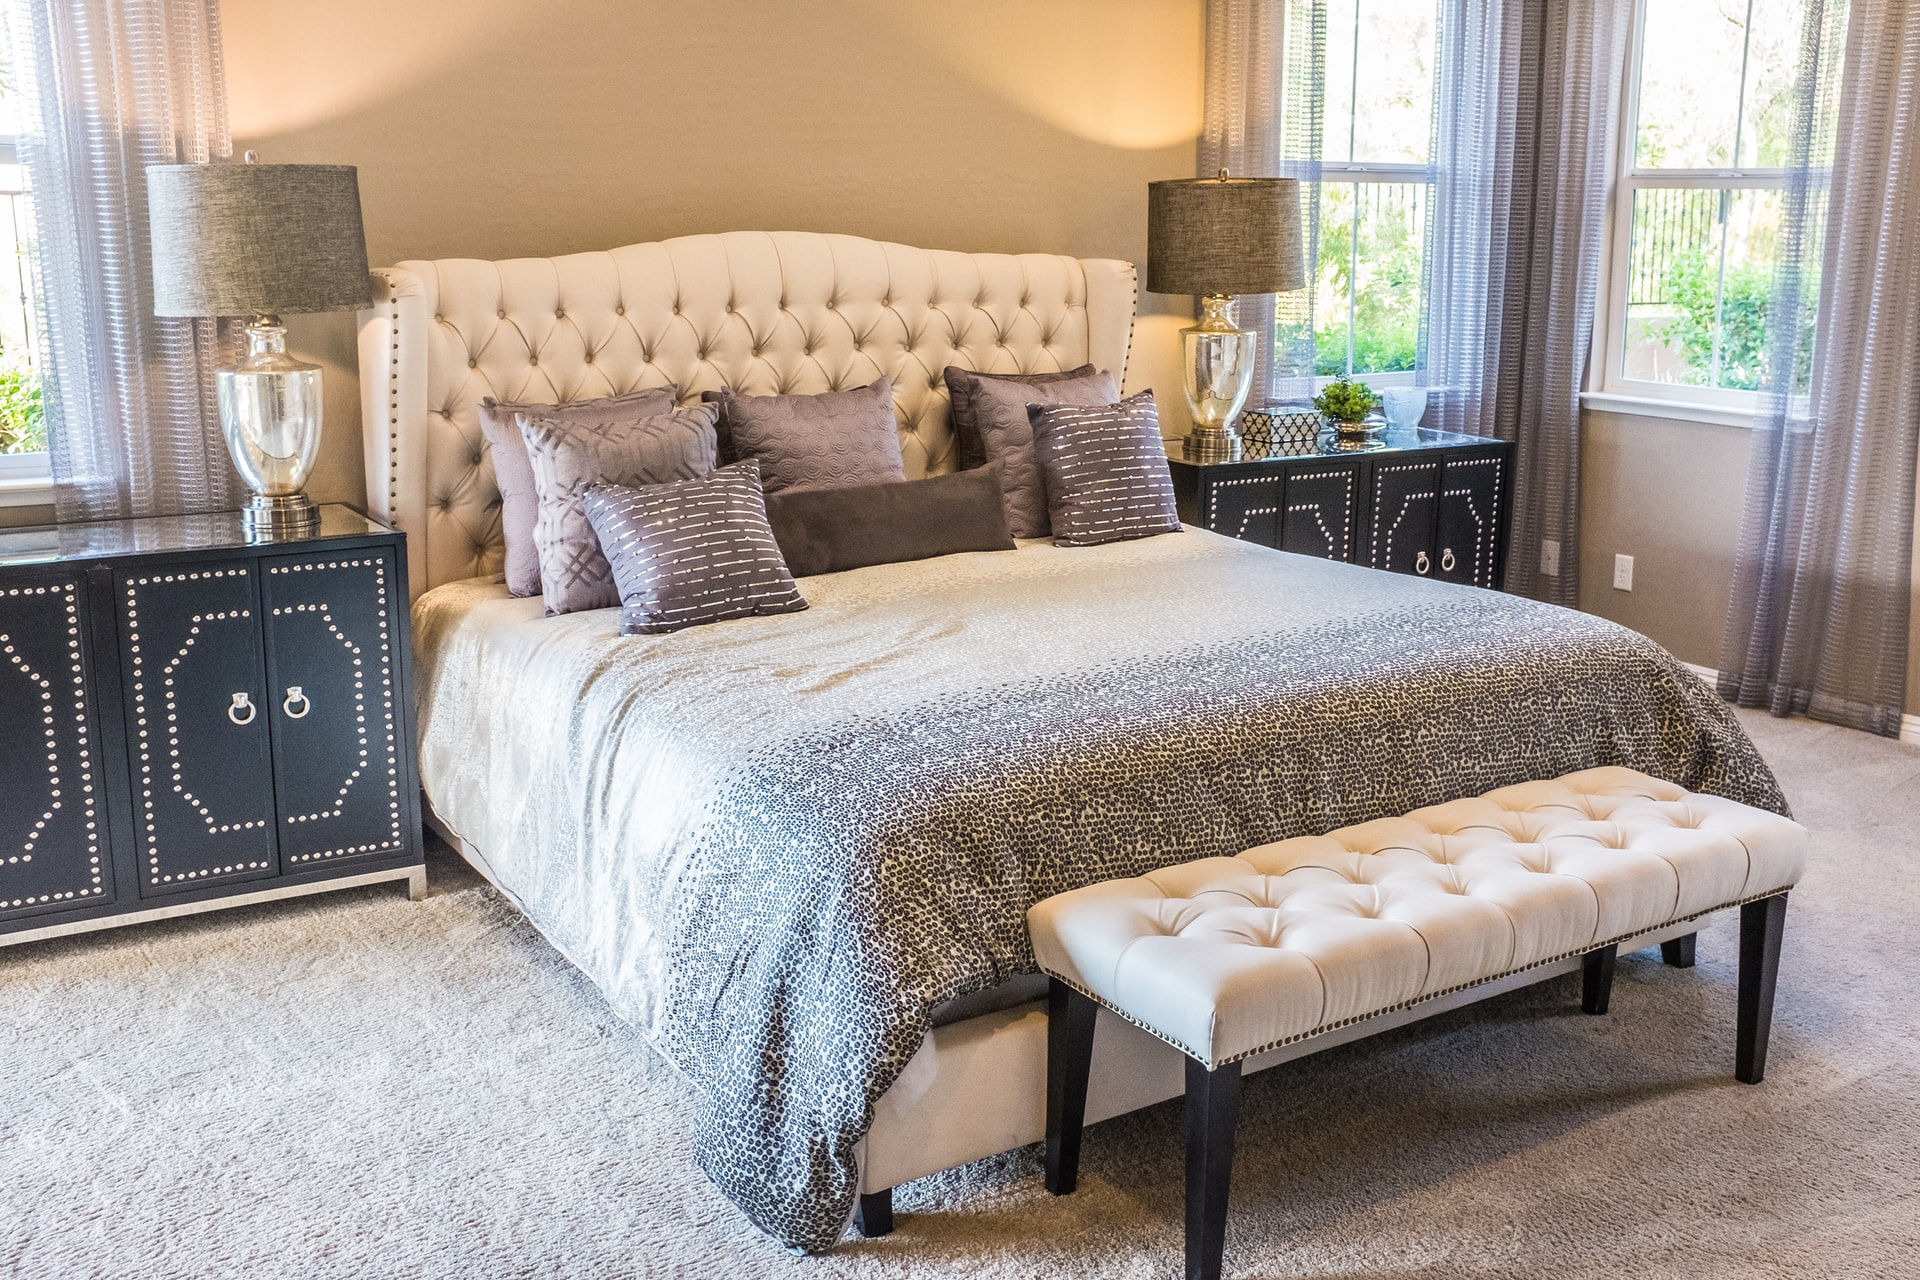 How to accessorize a bedroom dresser, Zazzy Home